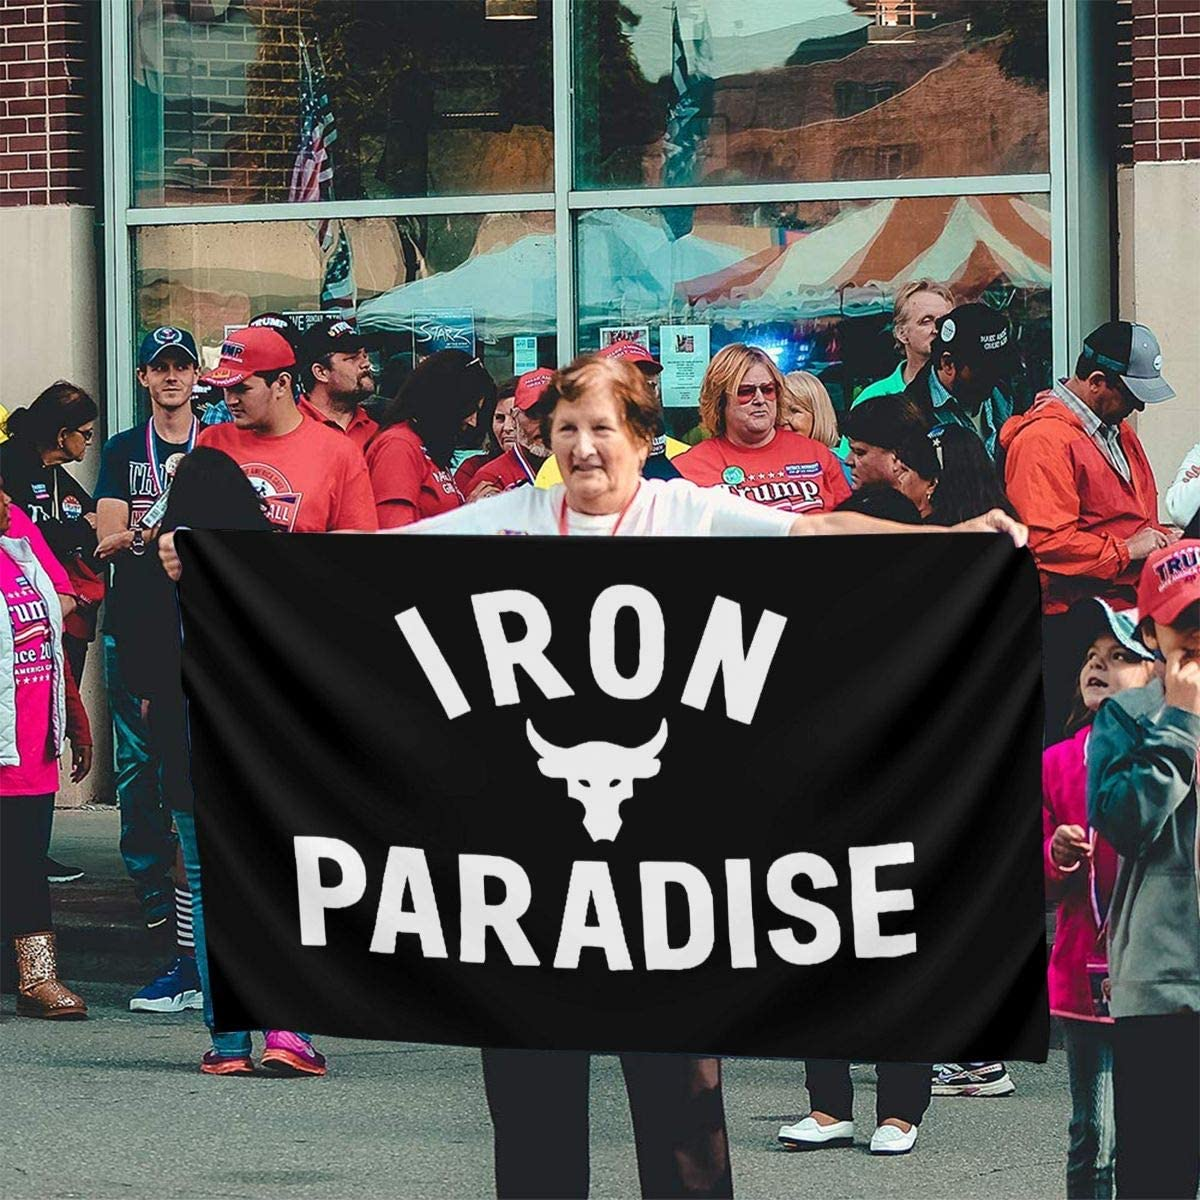 Iron Paradise Home Garden Flag Polyester Flag Indoor//Outdoor Wall Banners Decorative Flag 3x5 Foot